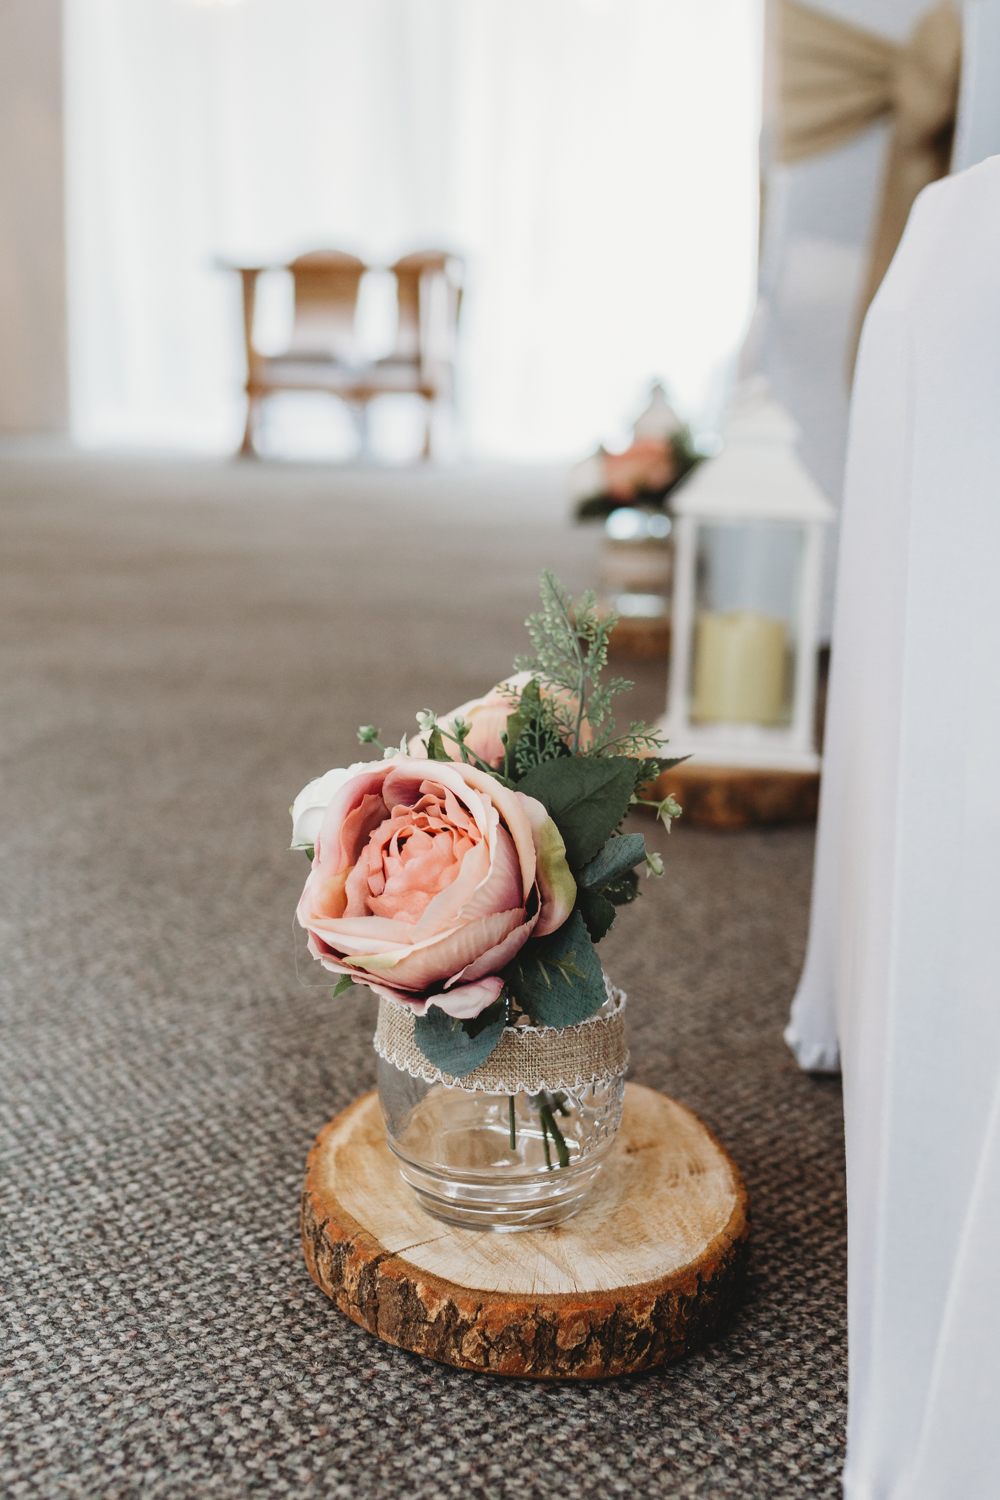 Aisle Flowers Pew End Pink Rose Jar Log Slice Crug Glas Country House Wedding Simon Murray Images